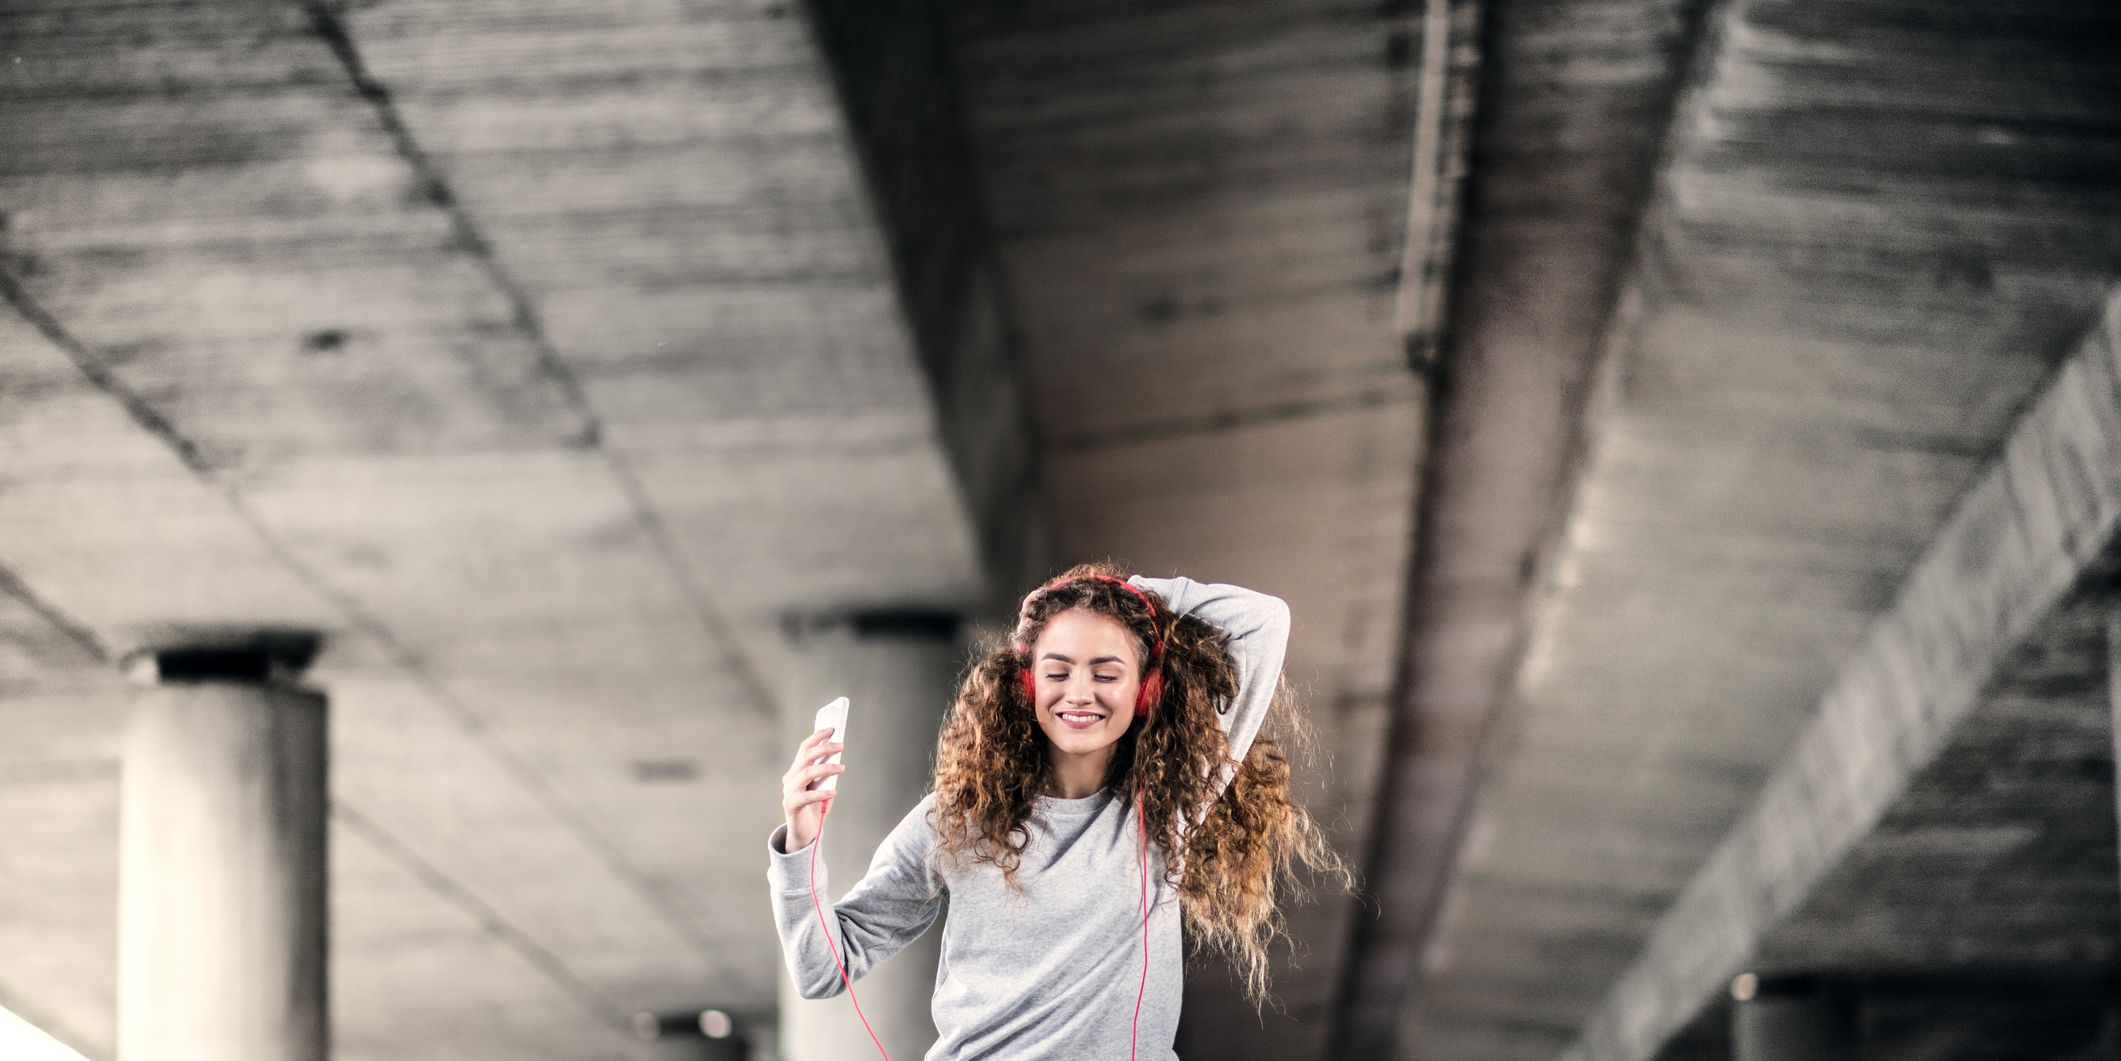 A beautiful young woman with smartphone and red headphones under the bridge in the city, listening to music.